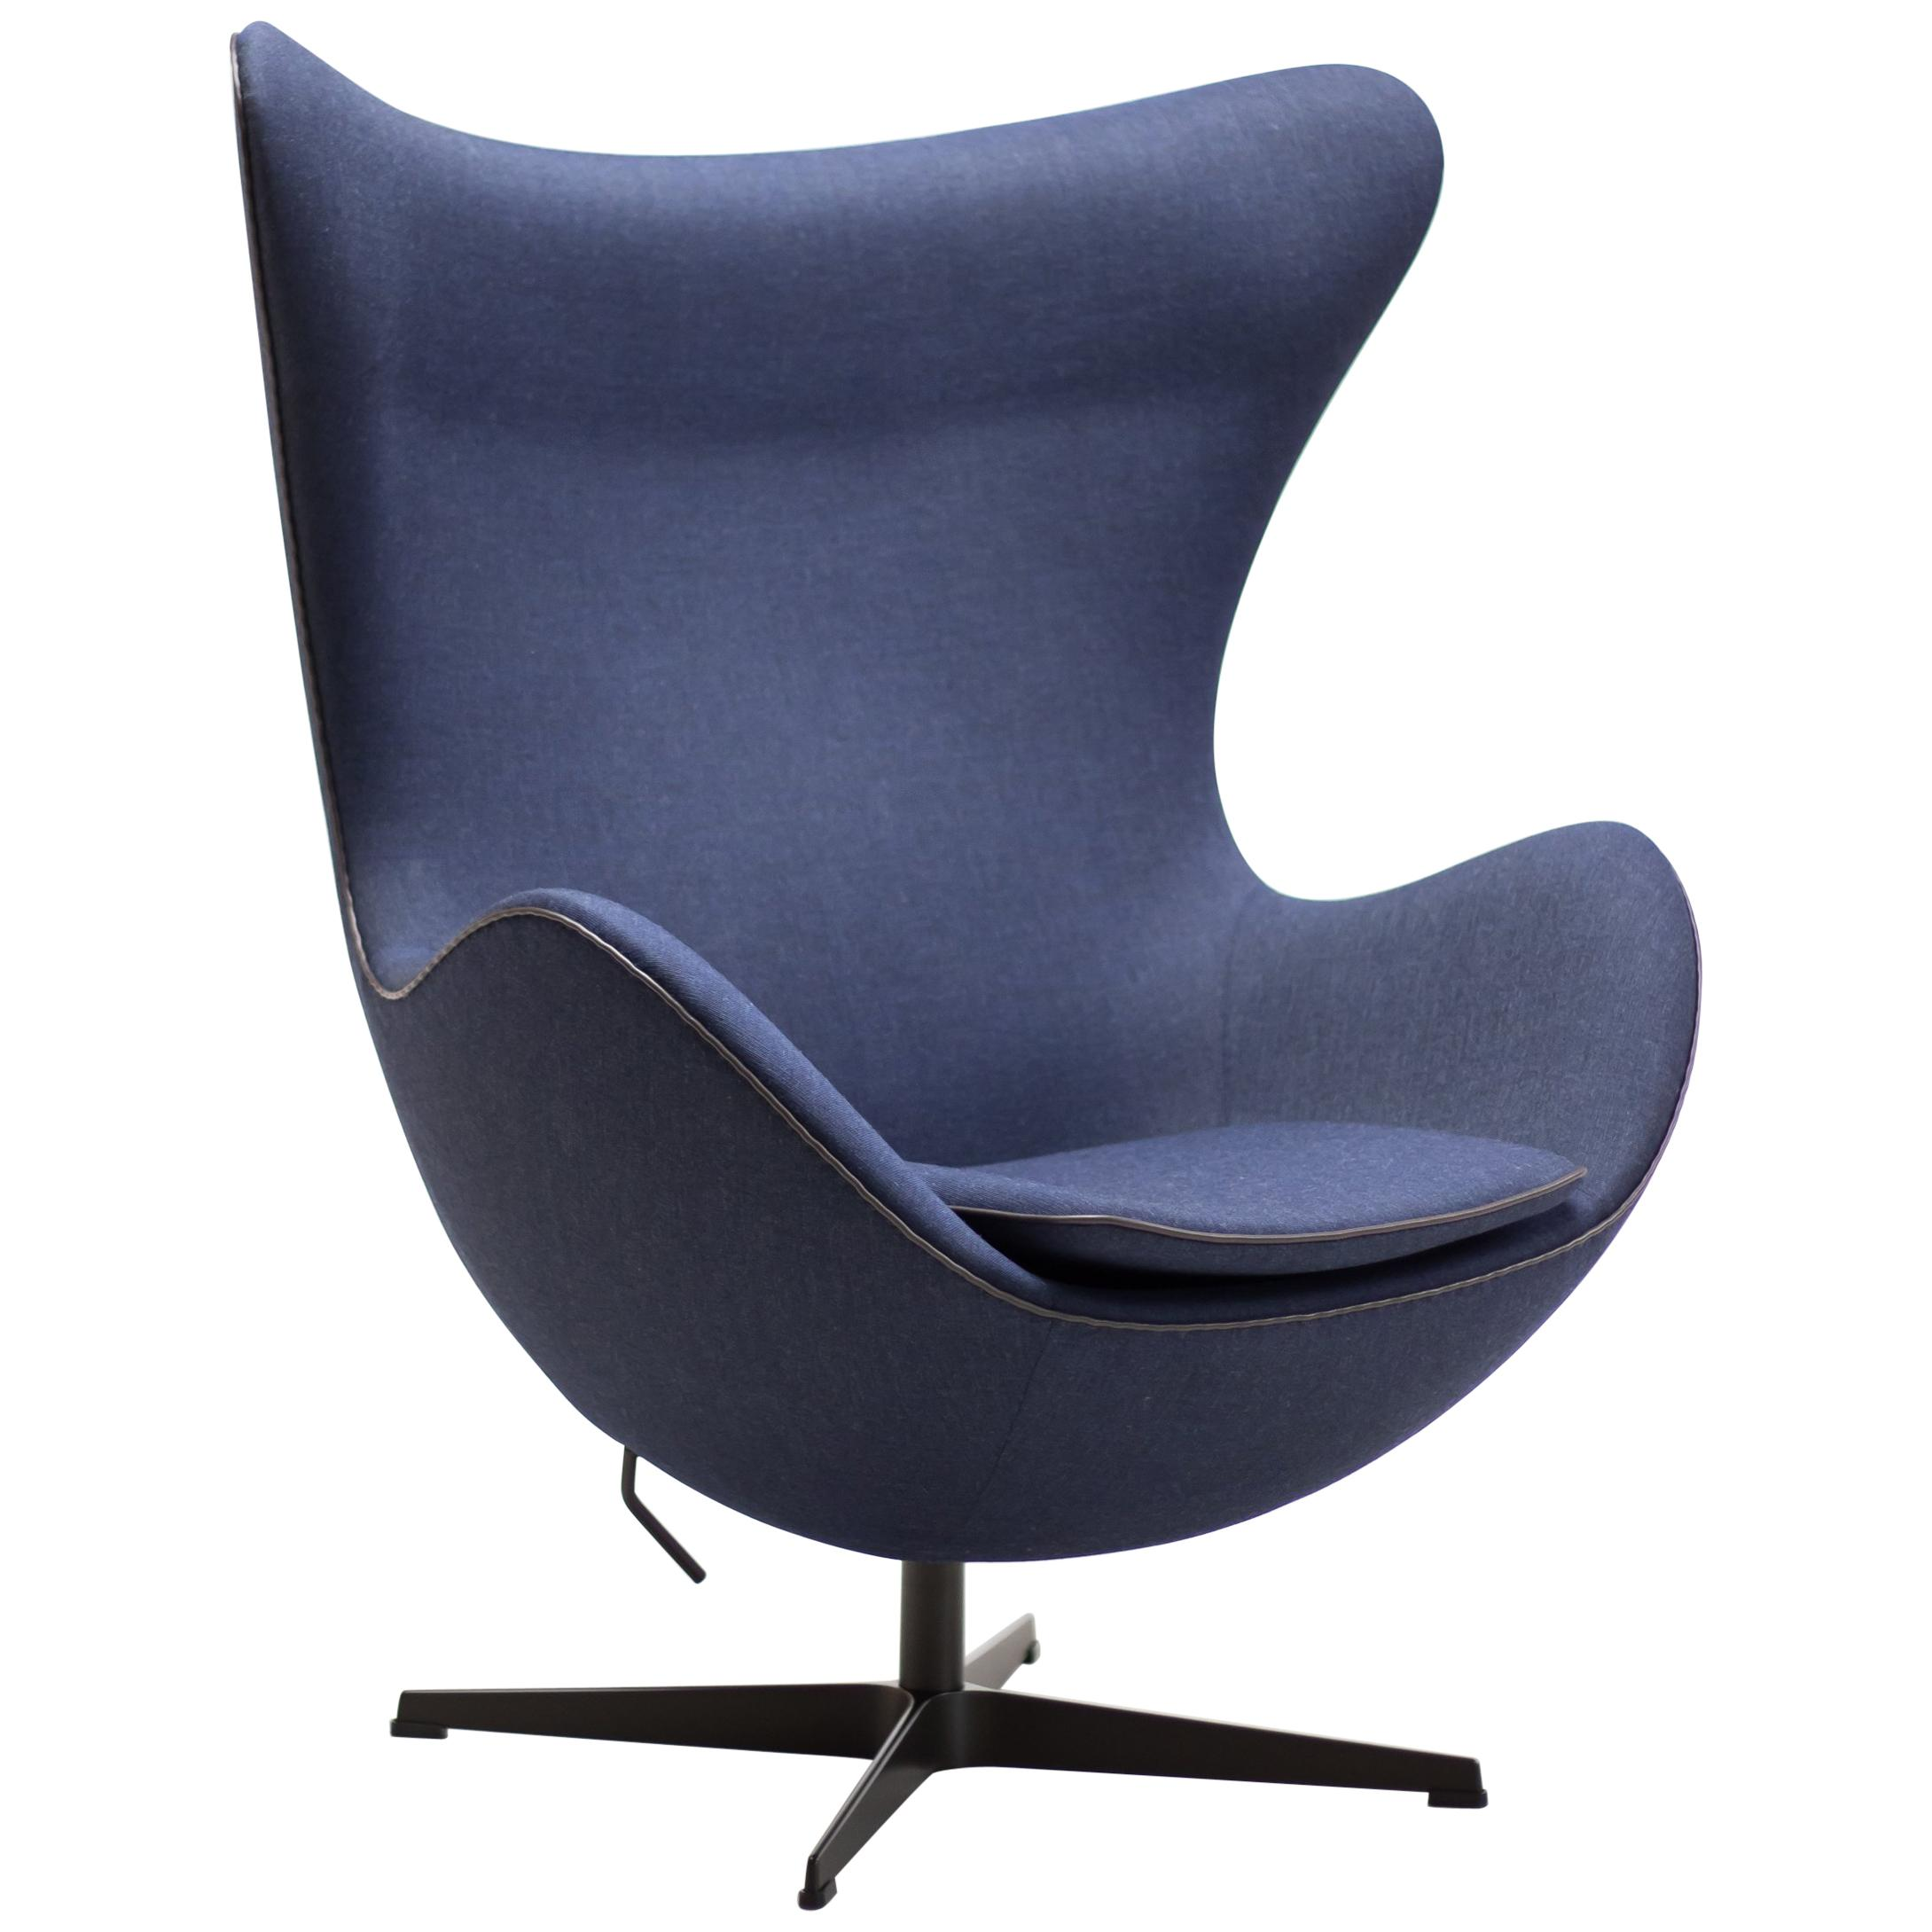 Arne Jacobsen Egg Chair Limited Edition Egg Chair By Arne Jacobsen